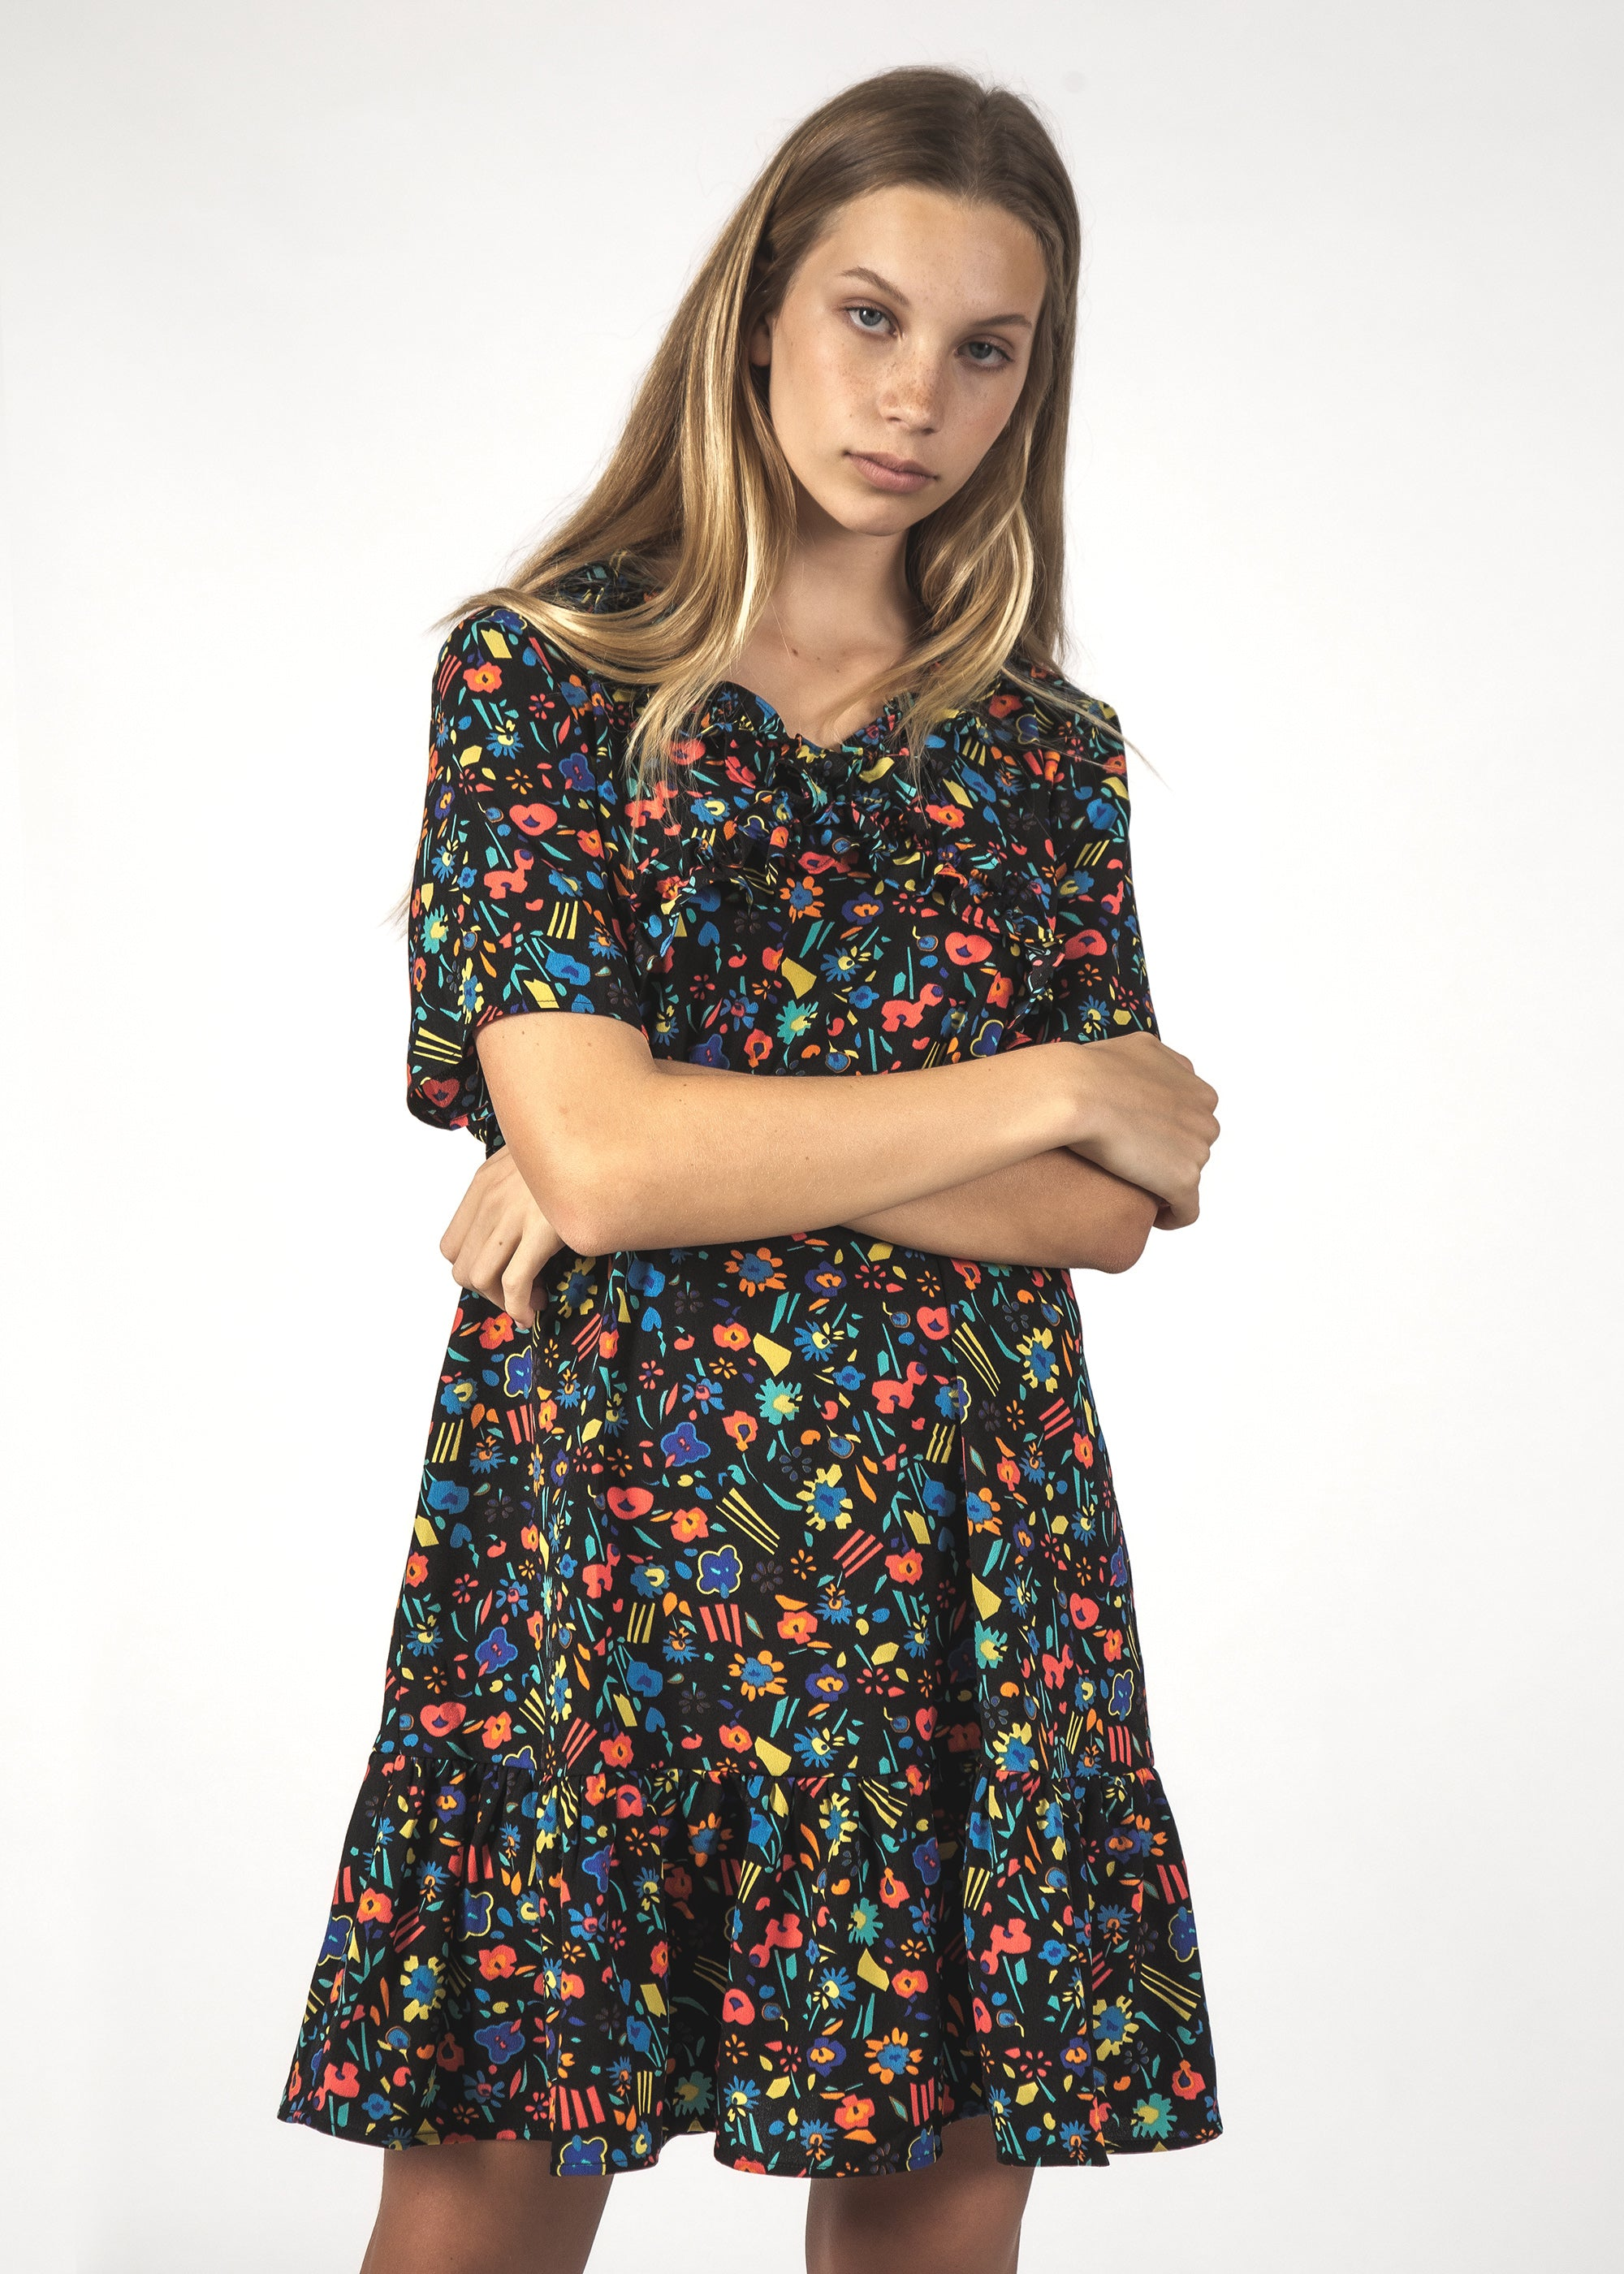 JOYFUL DRESS - BLACK SHAPES